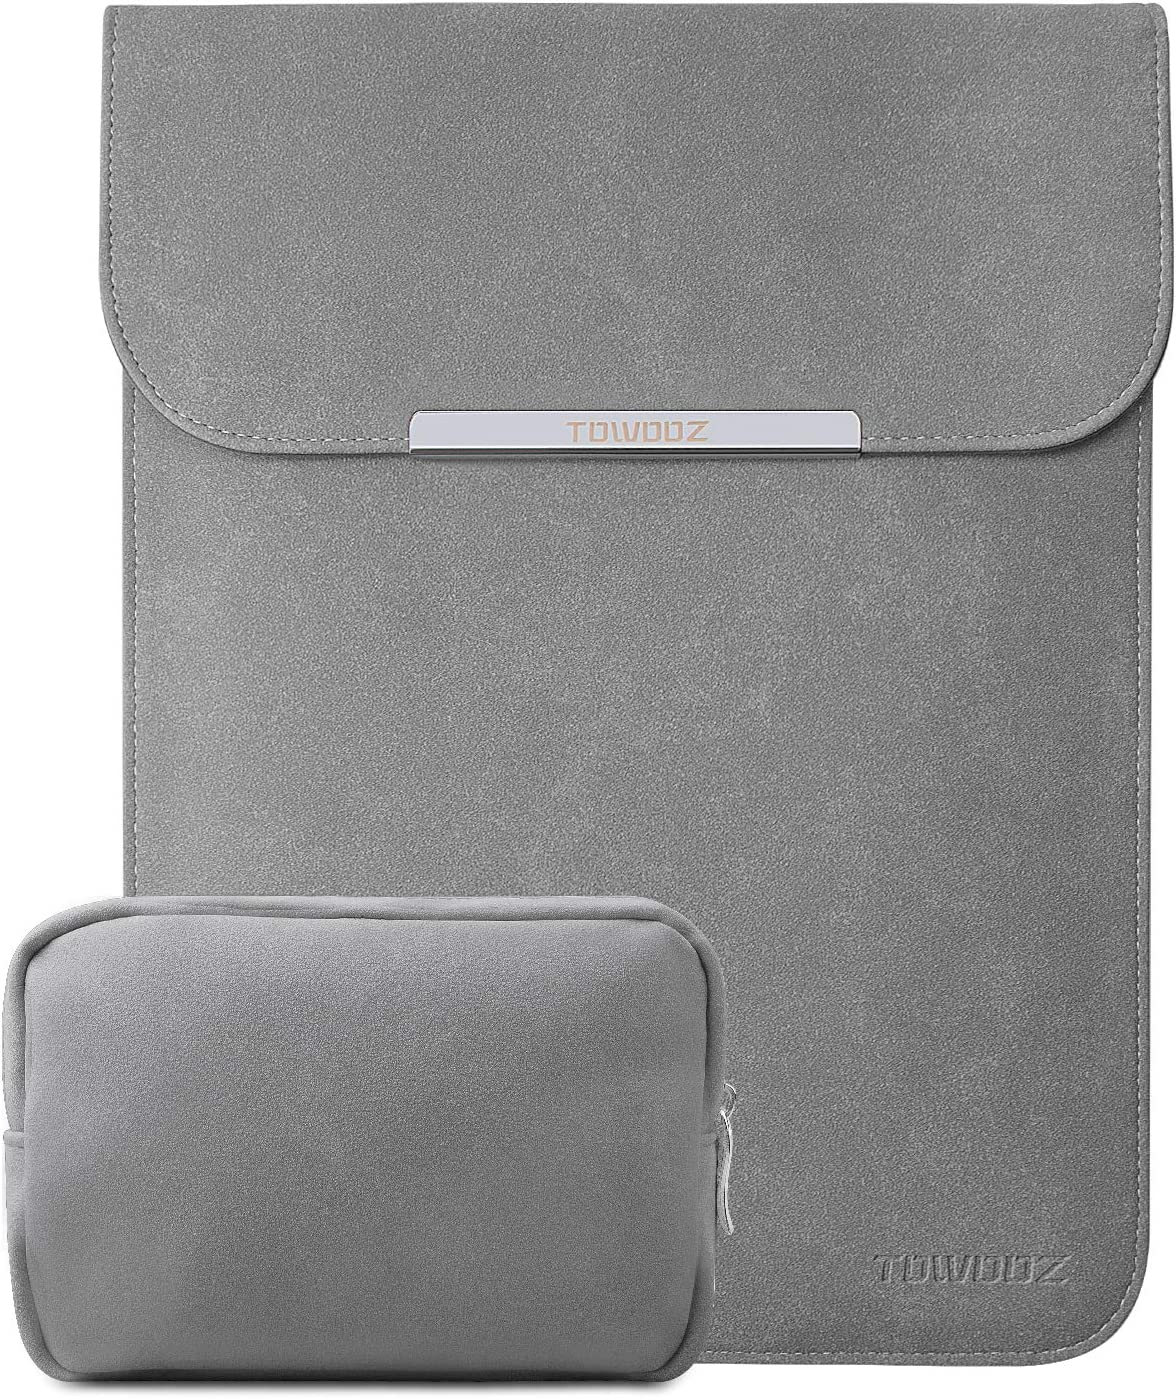 TOWOOZ 13.3 Inch Laptop Sleeve Case Compatible with 2016-2020 MacBook Air/MacBook Pro 13-13.3 inch/iPad Pro 12.9/Surface Pro, Artificial Leather, Innovative Materials, with a Accessory Bag, Gray